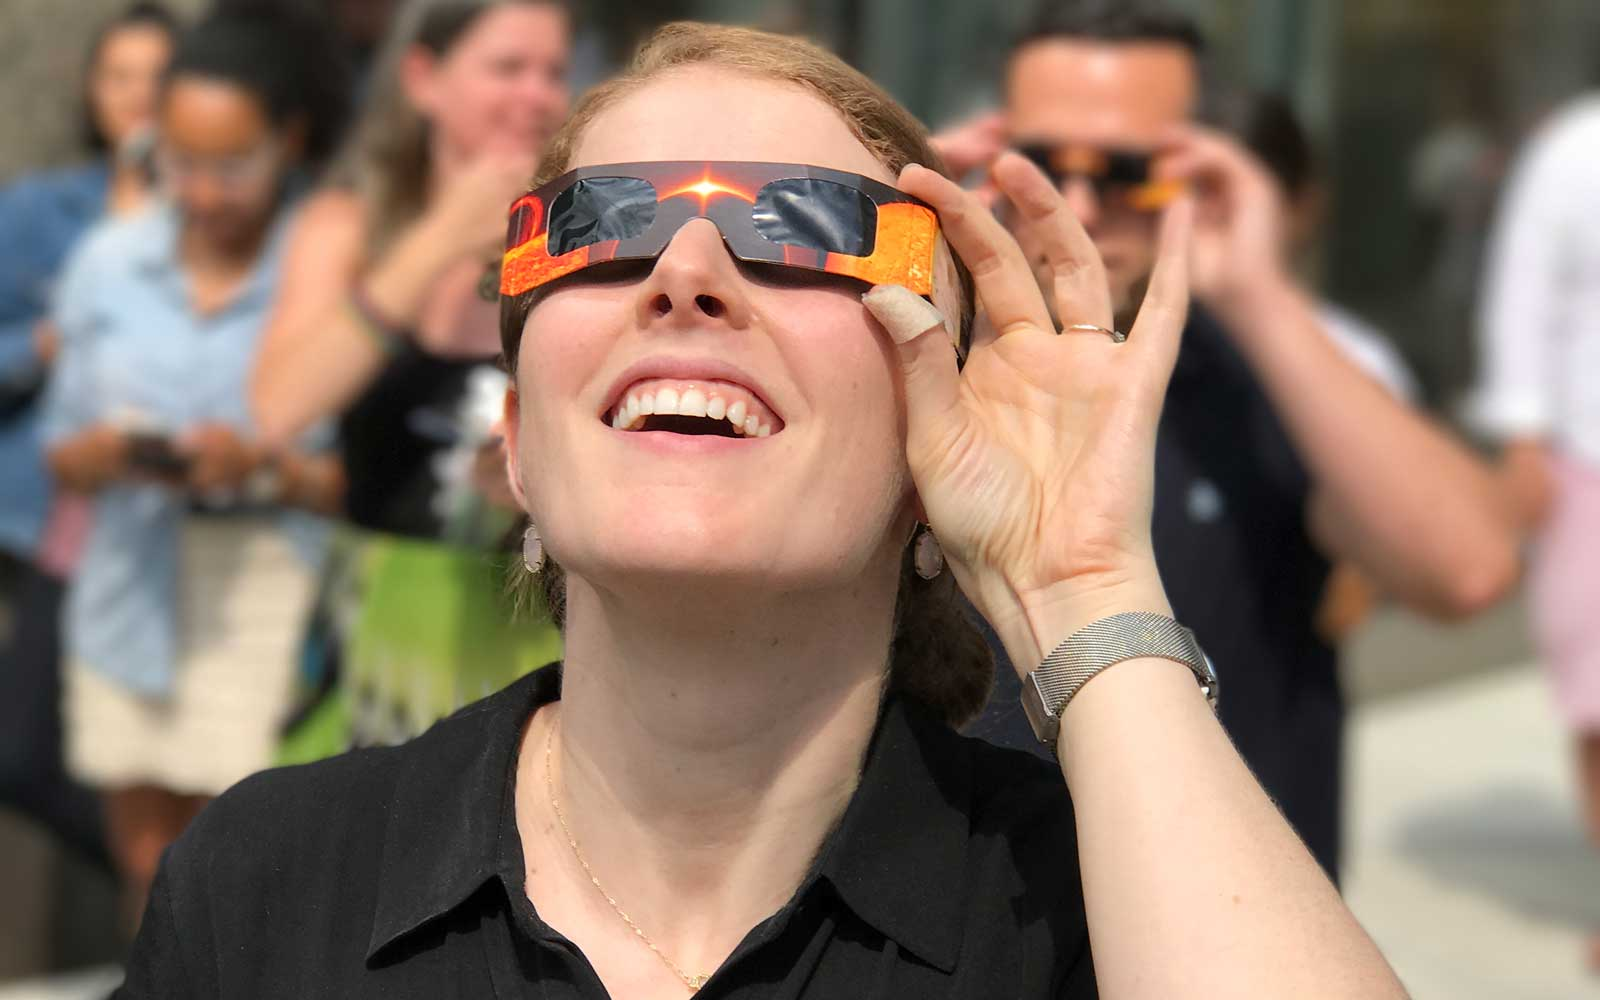 Donate Your Eclipse Glasses to This Organization